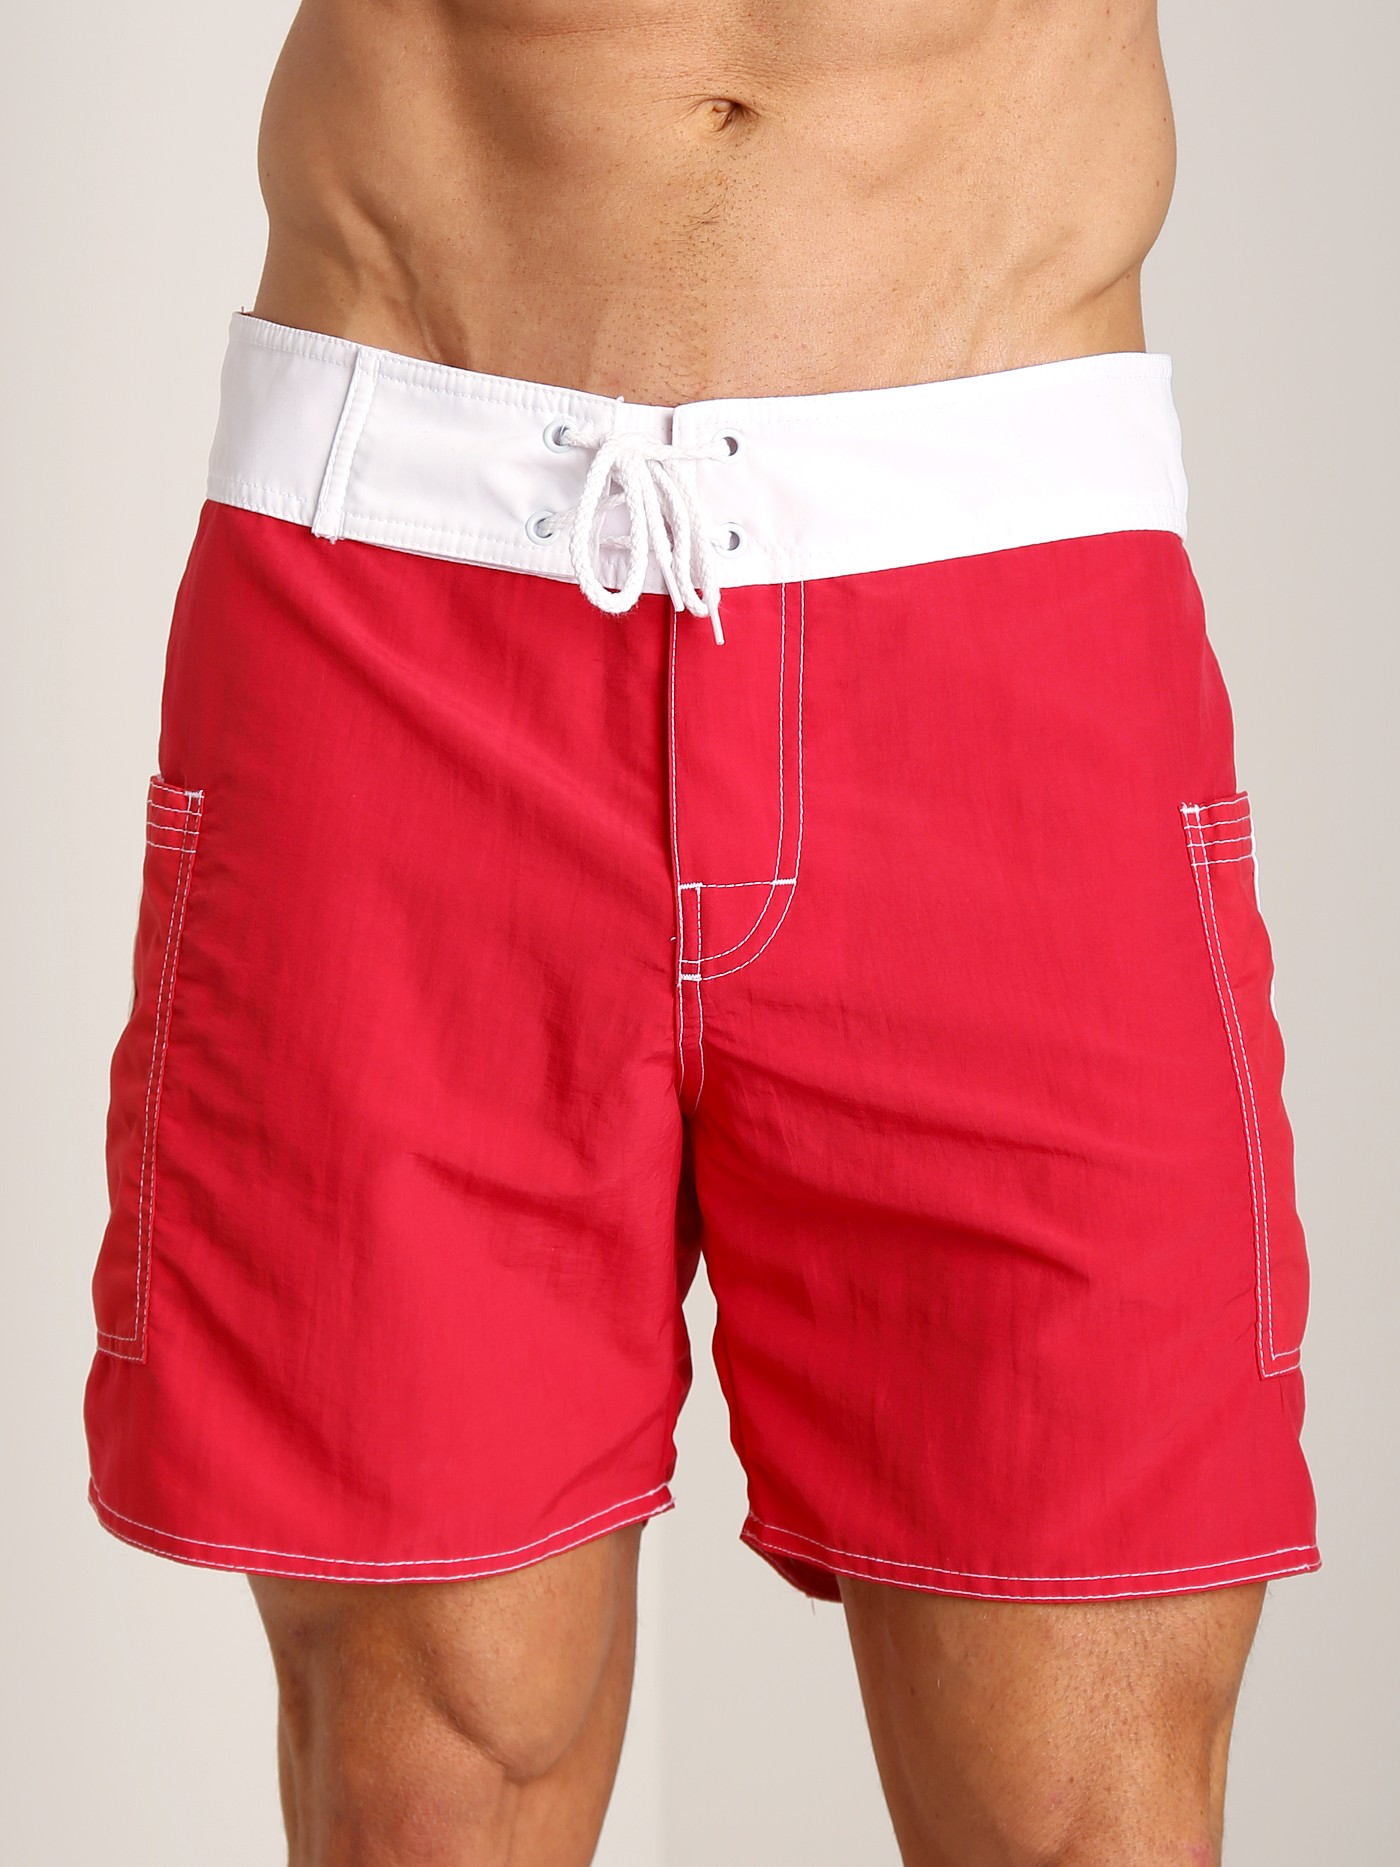 Sauvage Pocketed Board Shorts Navy//White